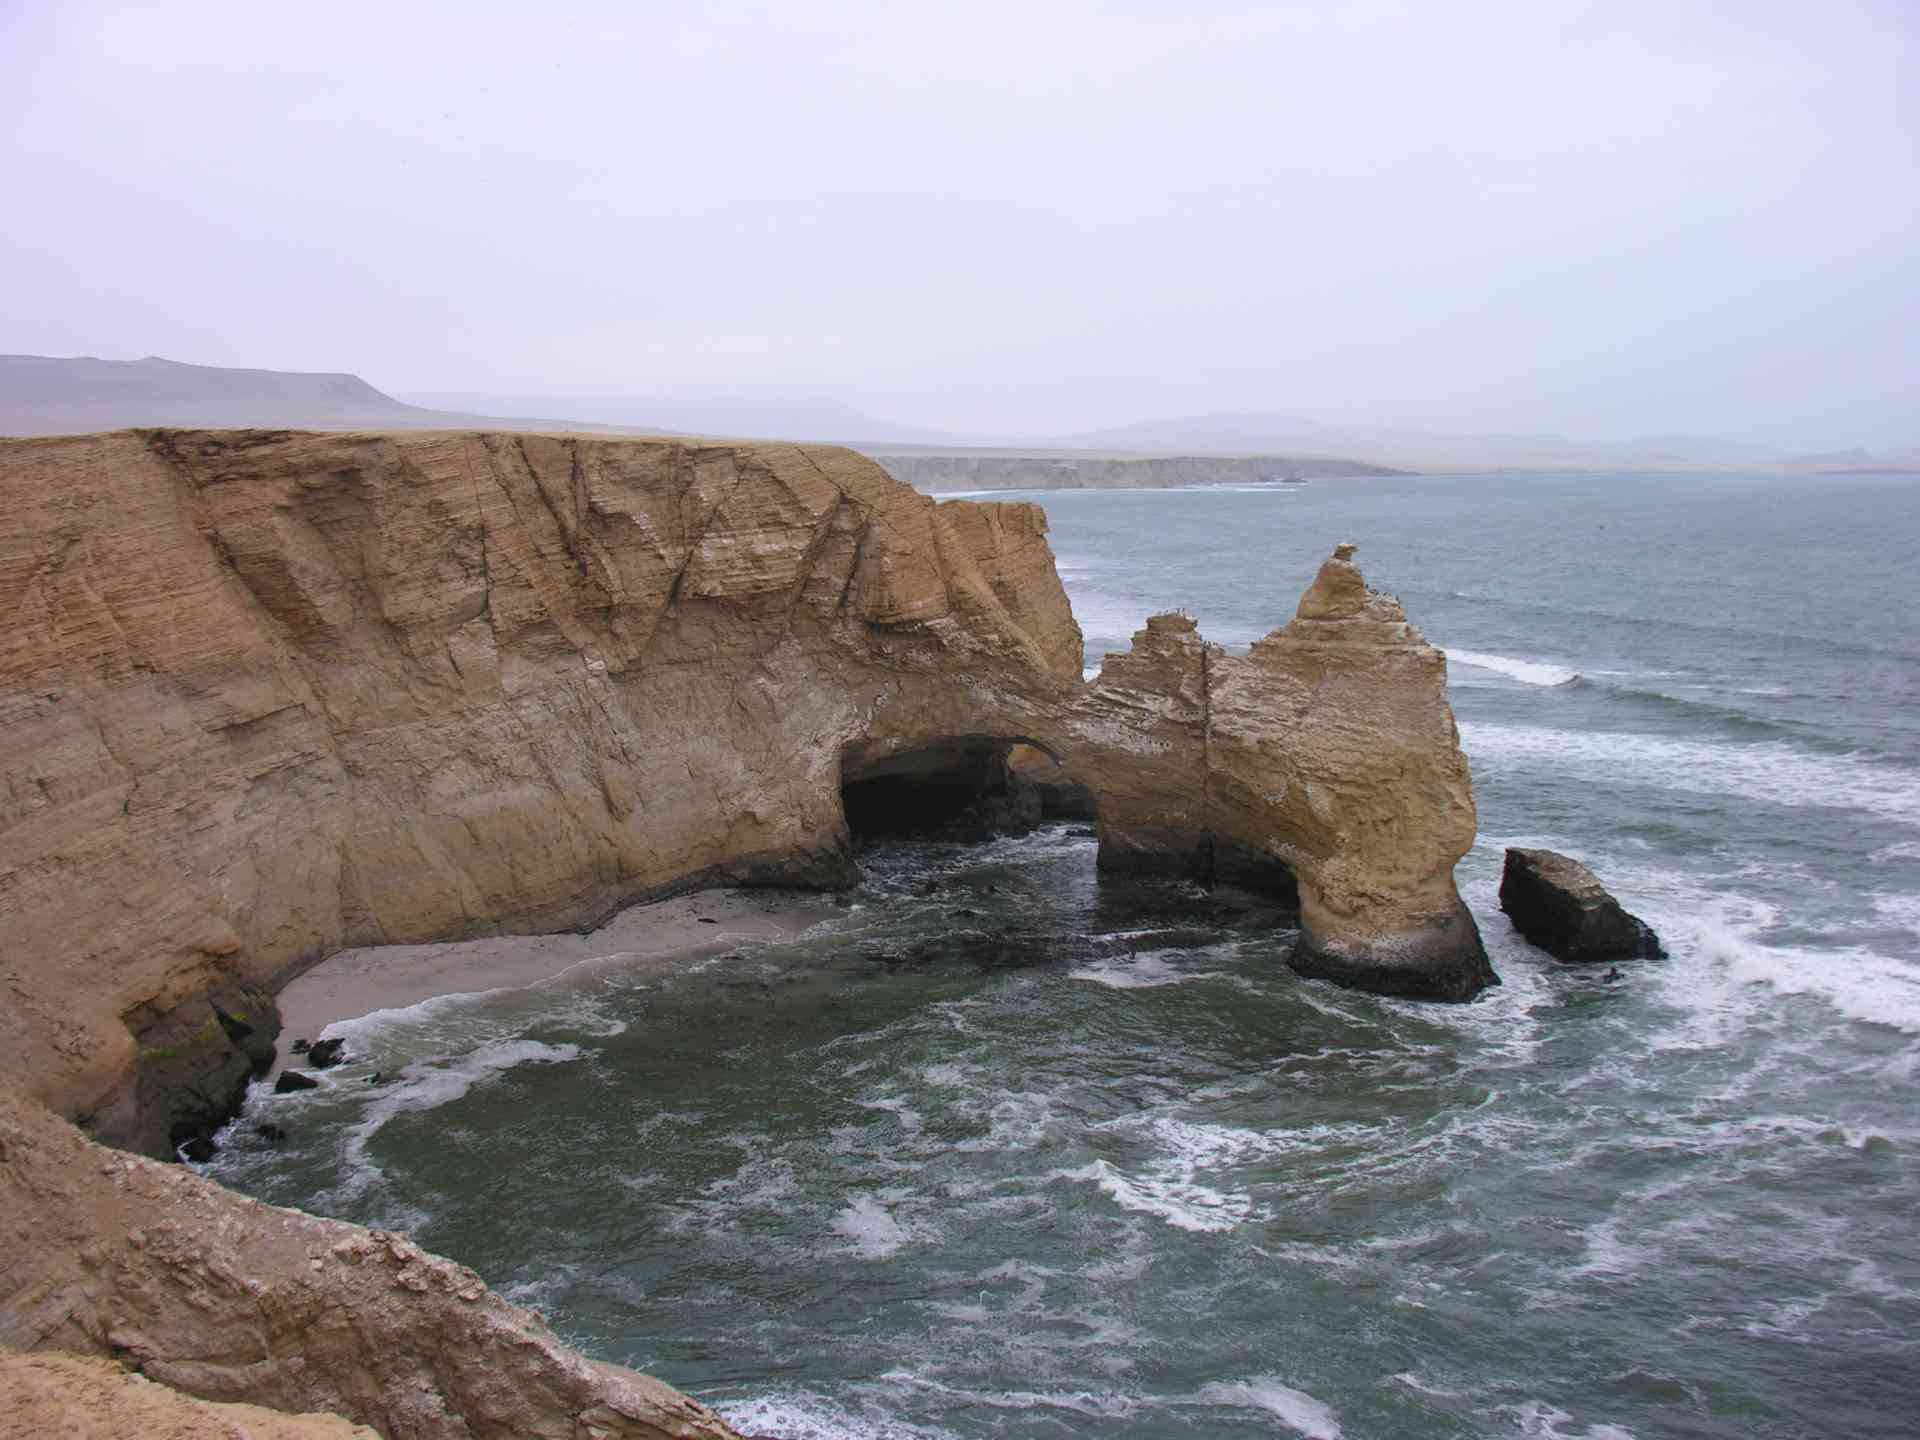 Paracas National Reserve, Peru by Marion Bunnik